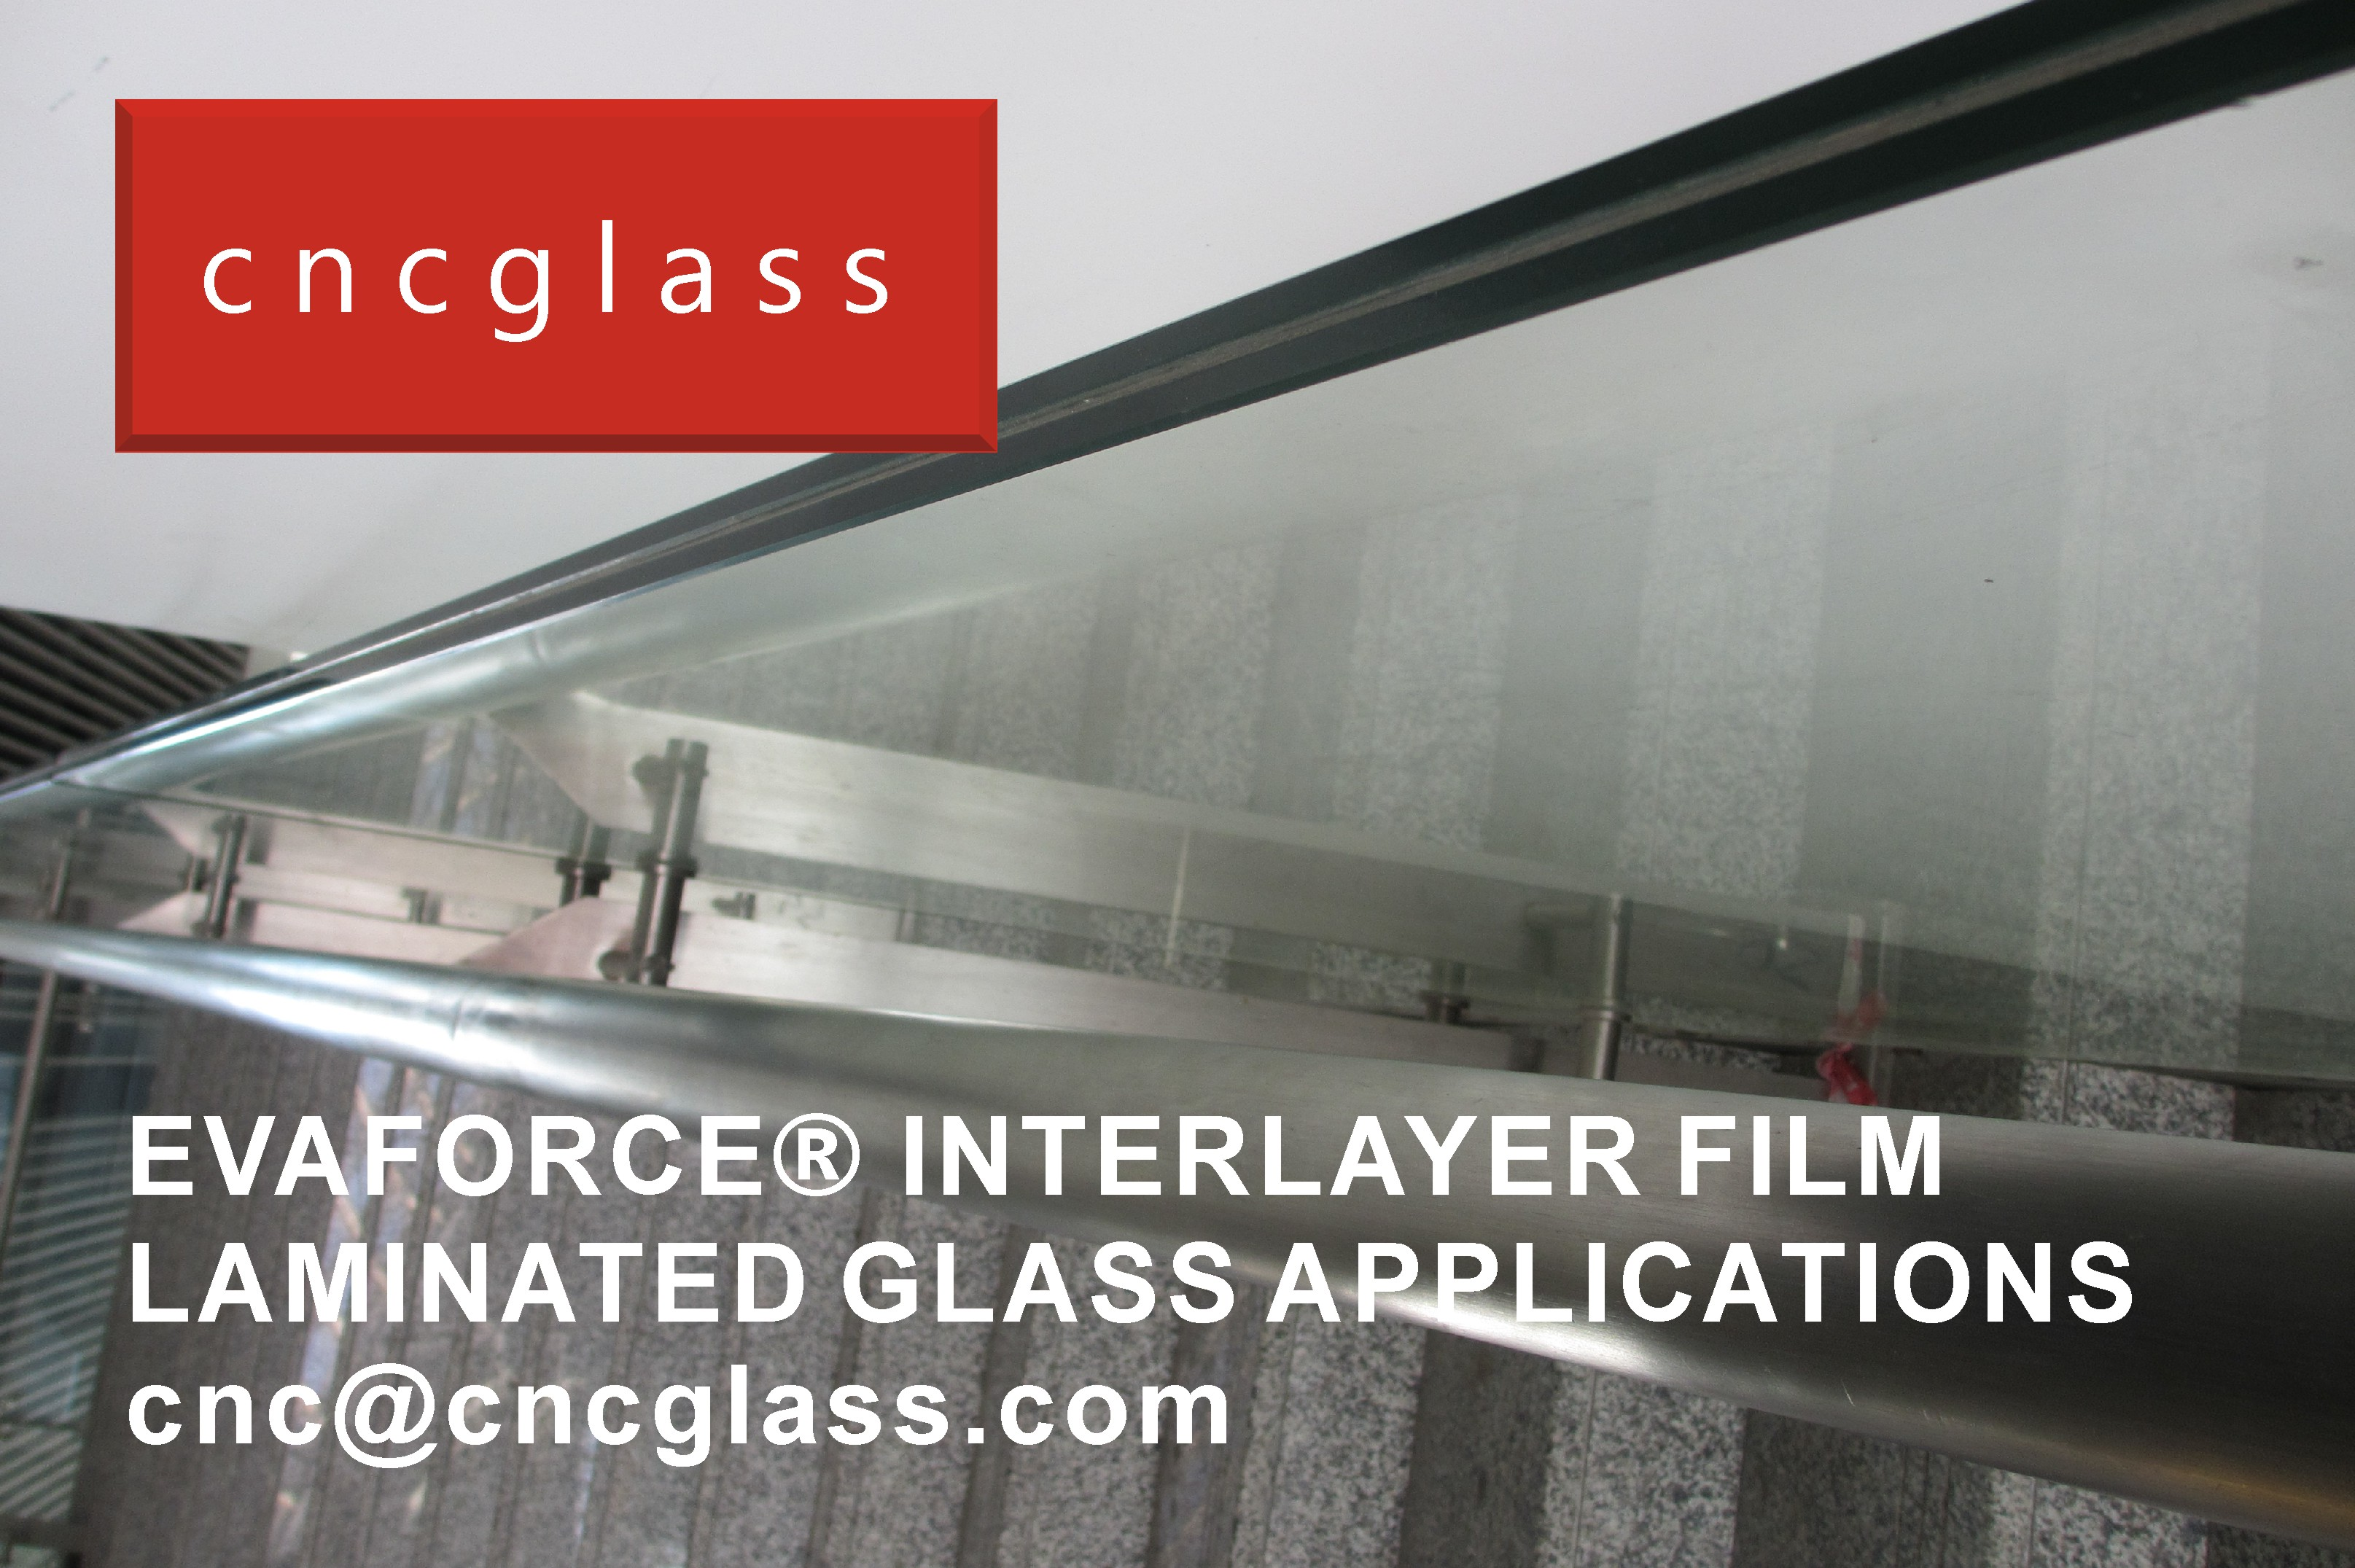 EVAFORCE INTERLAYER FILM LAMINATED GLASS APPLICATIONS (11)